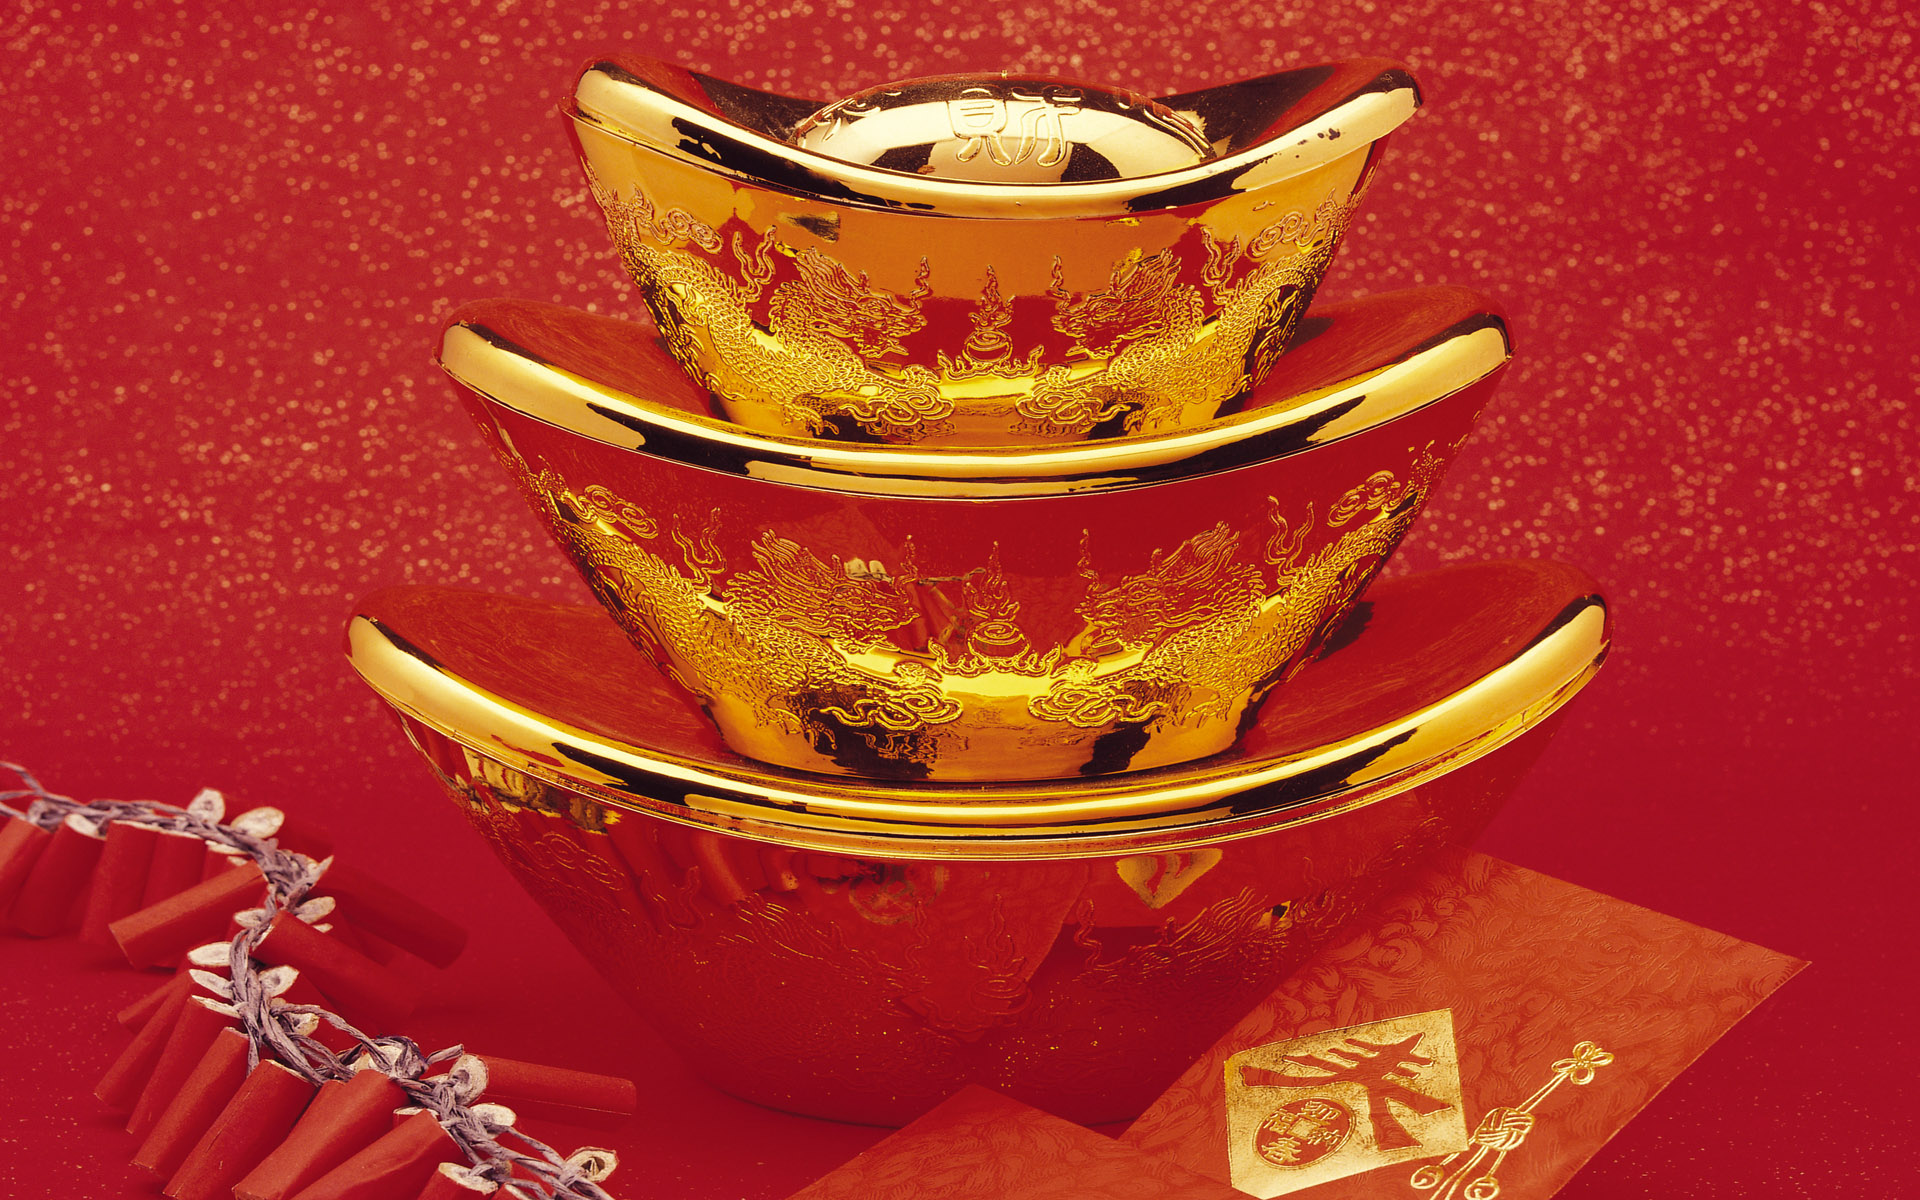 Chinese New Year Desktop Background - Wallpaper, High ...